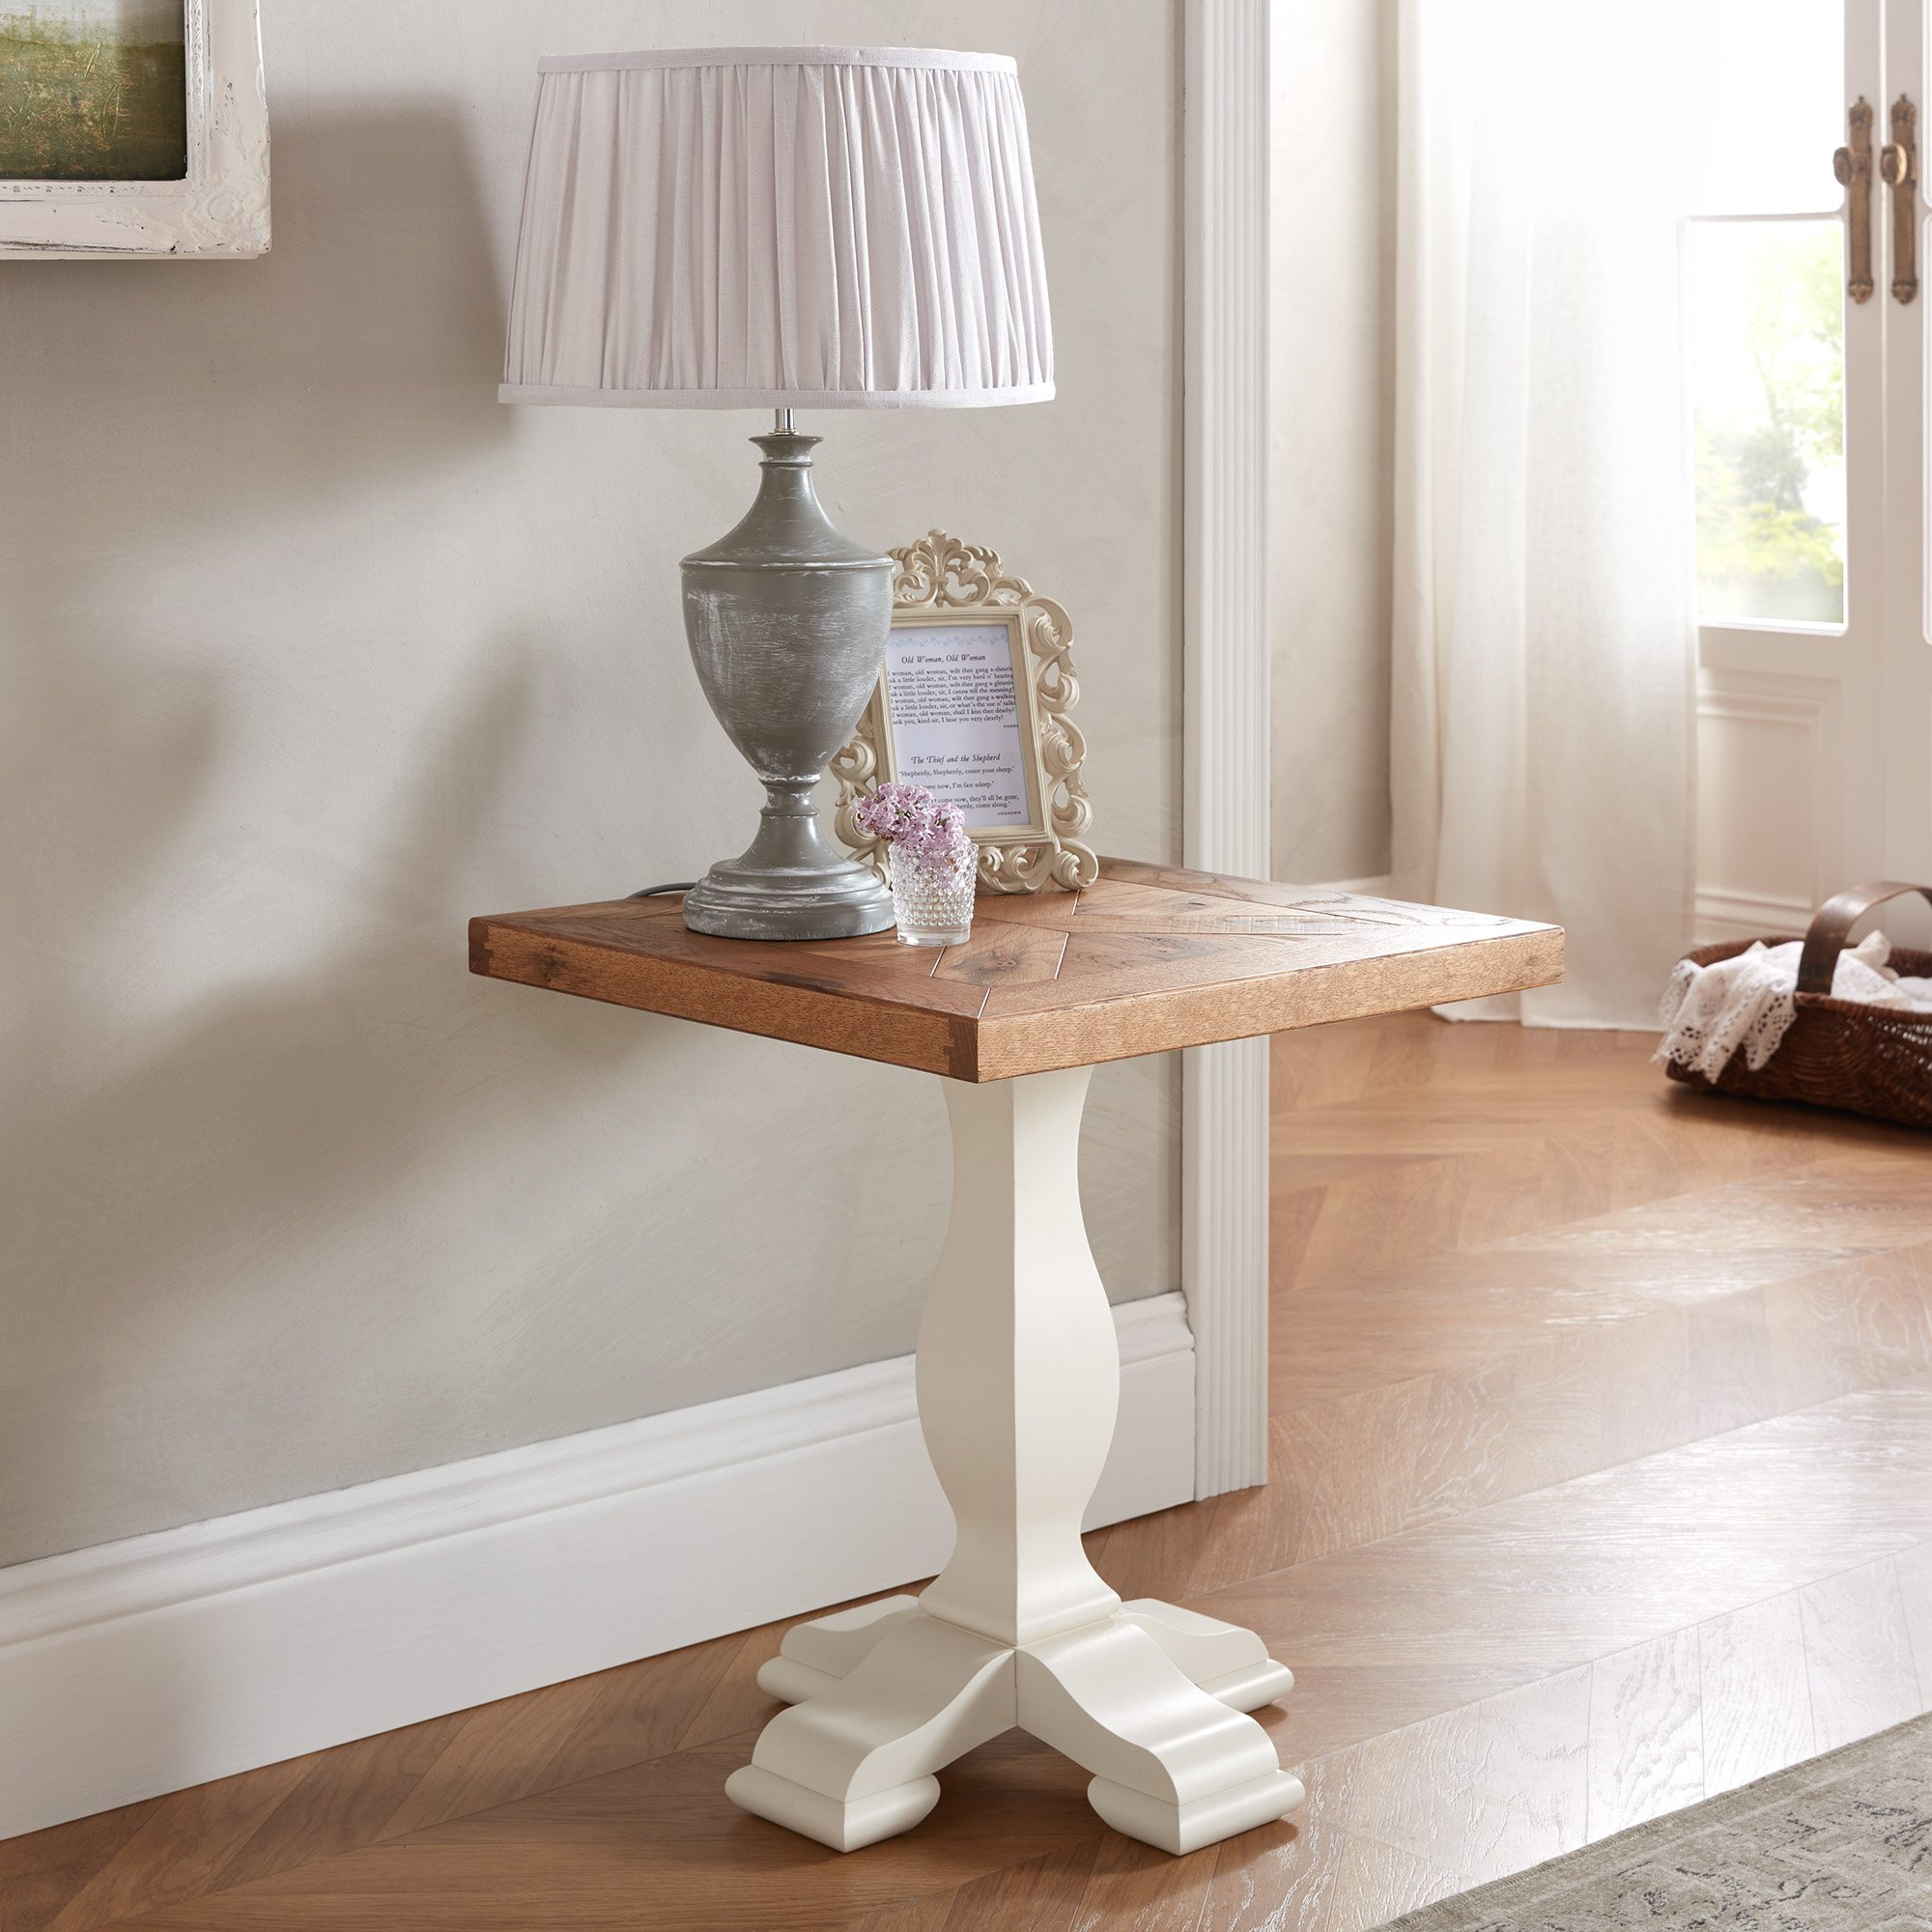 HIGHLAND LAMP TABLE - L51cm x D51cm x H56cm